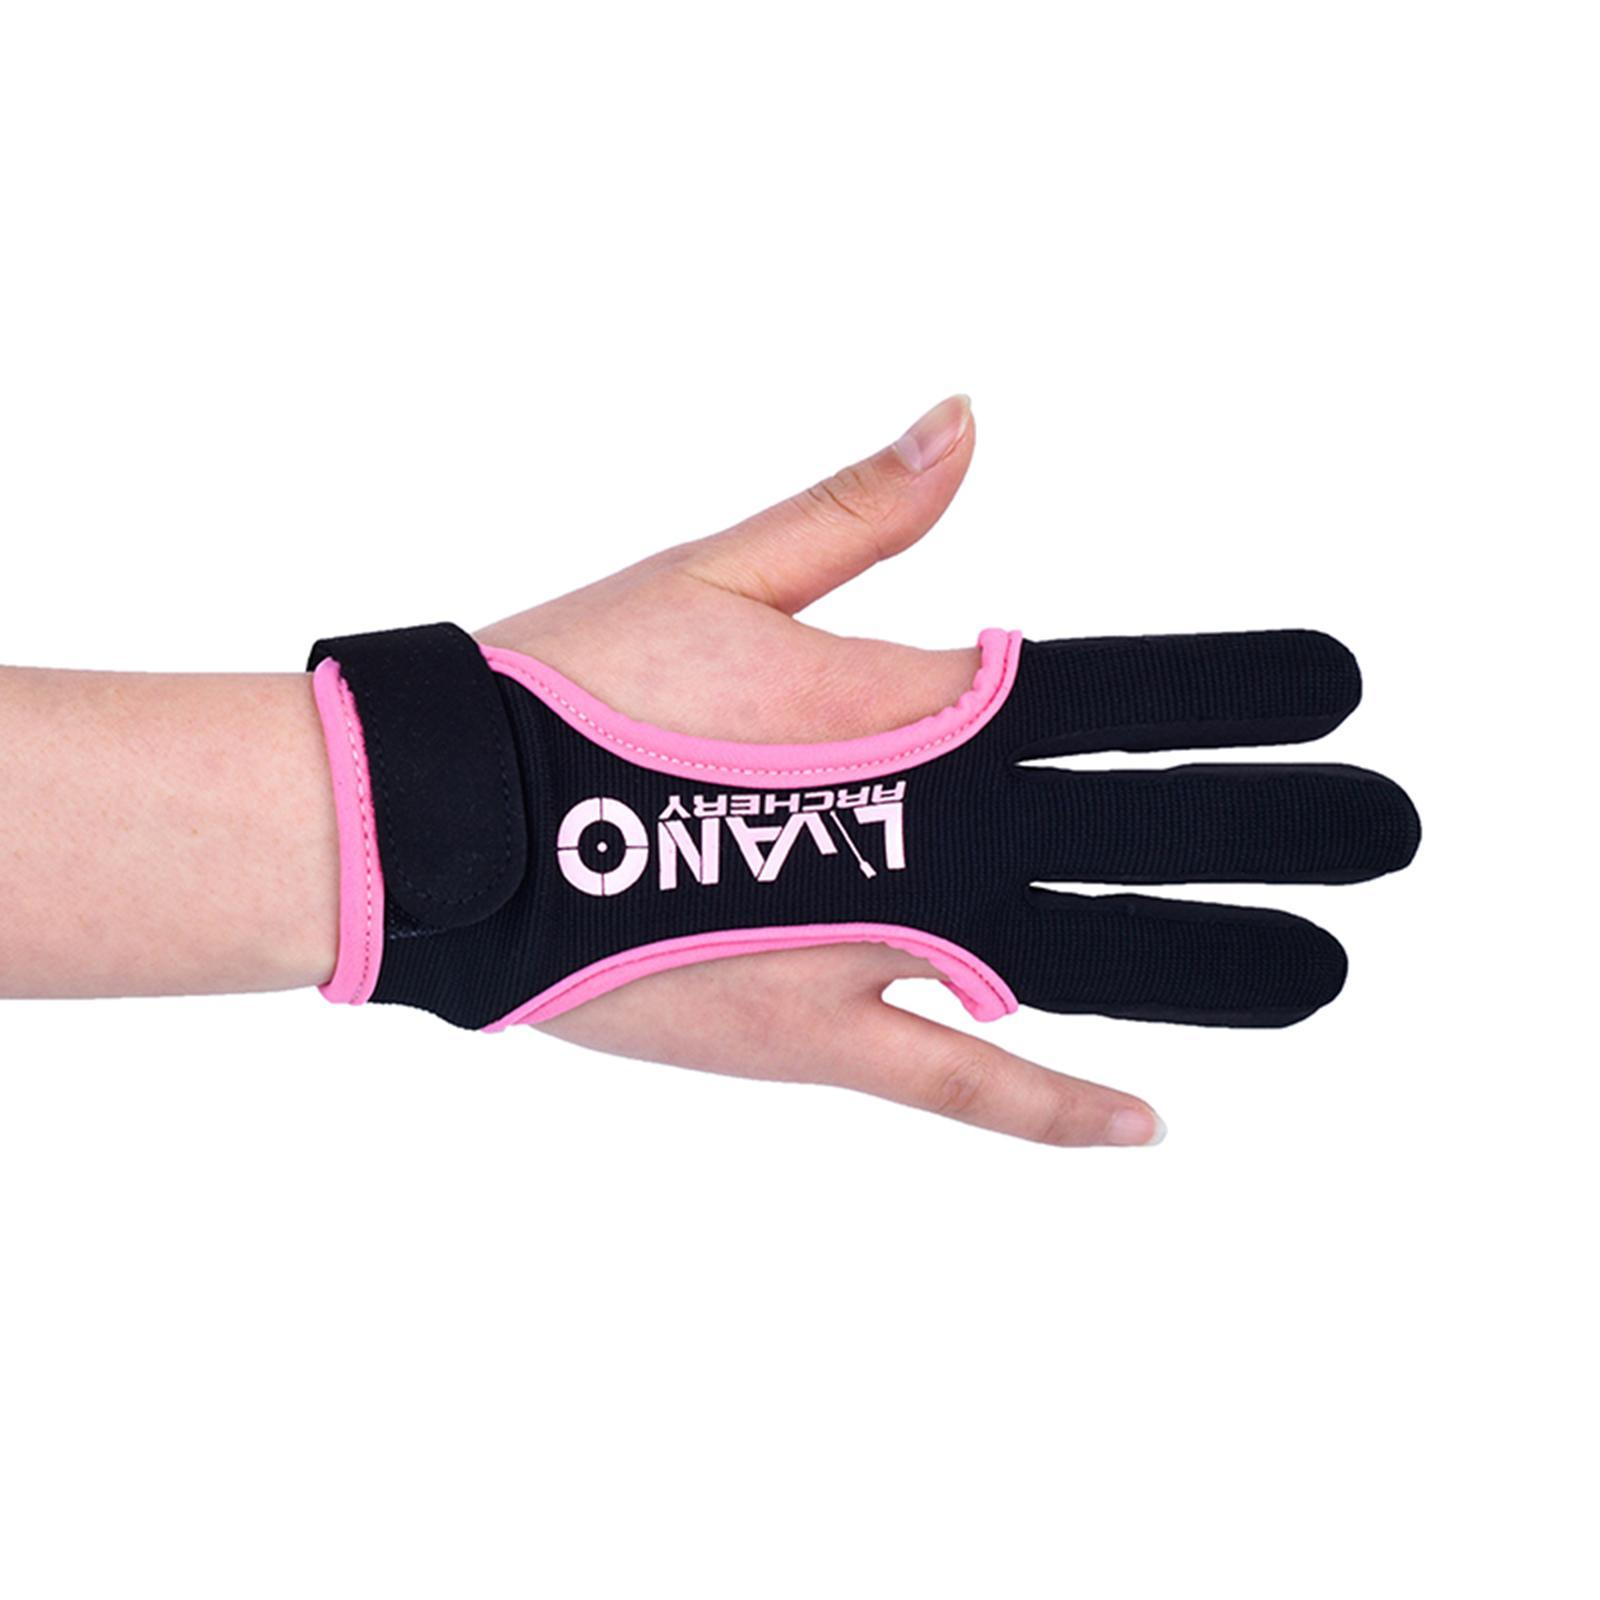 thumbnail 11 - Archery Glove for Recurve & Compound Bow 3 Finger Guard for Women Men Youth